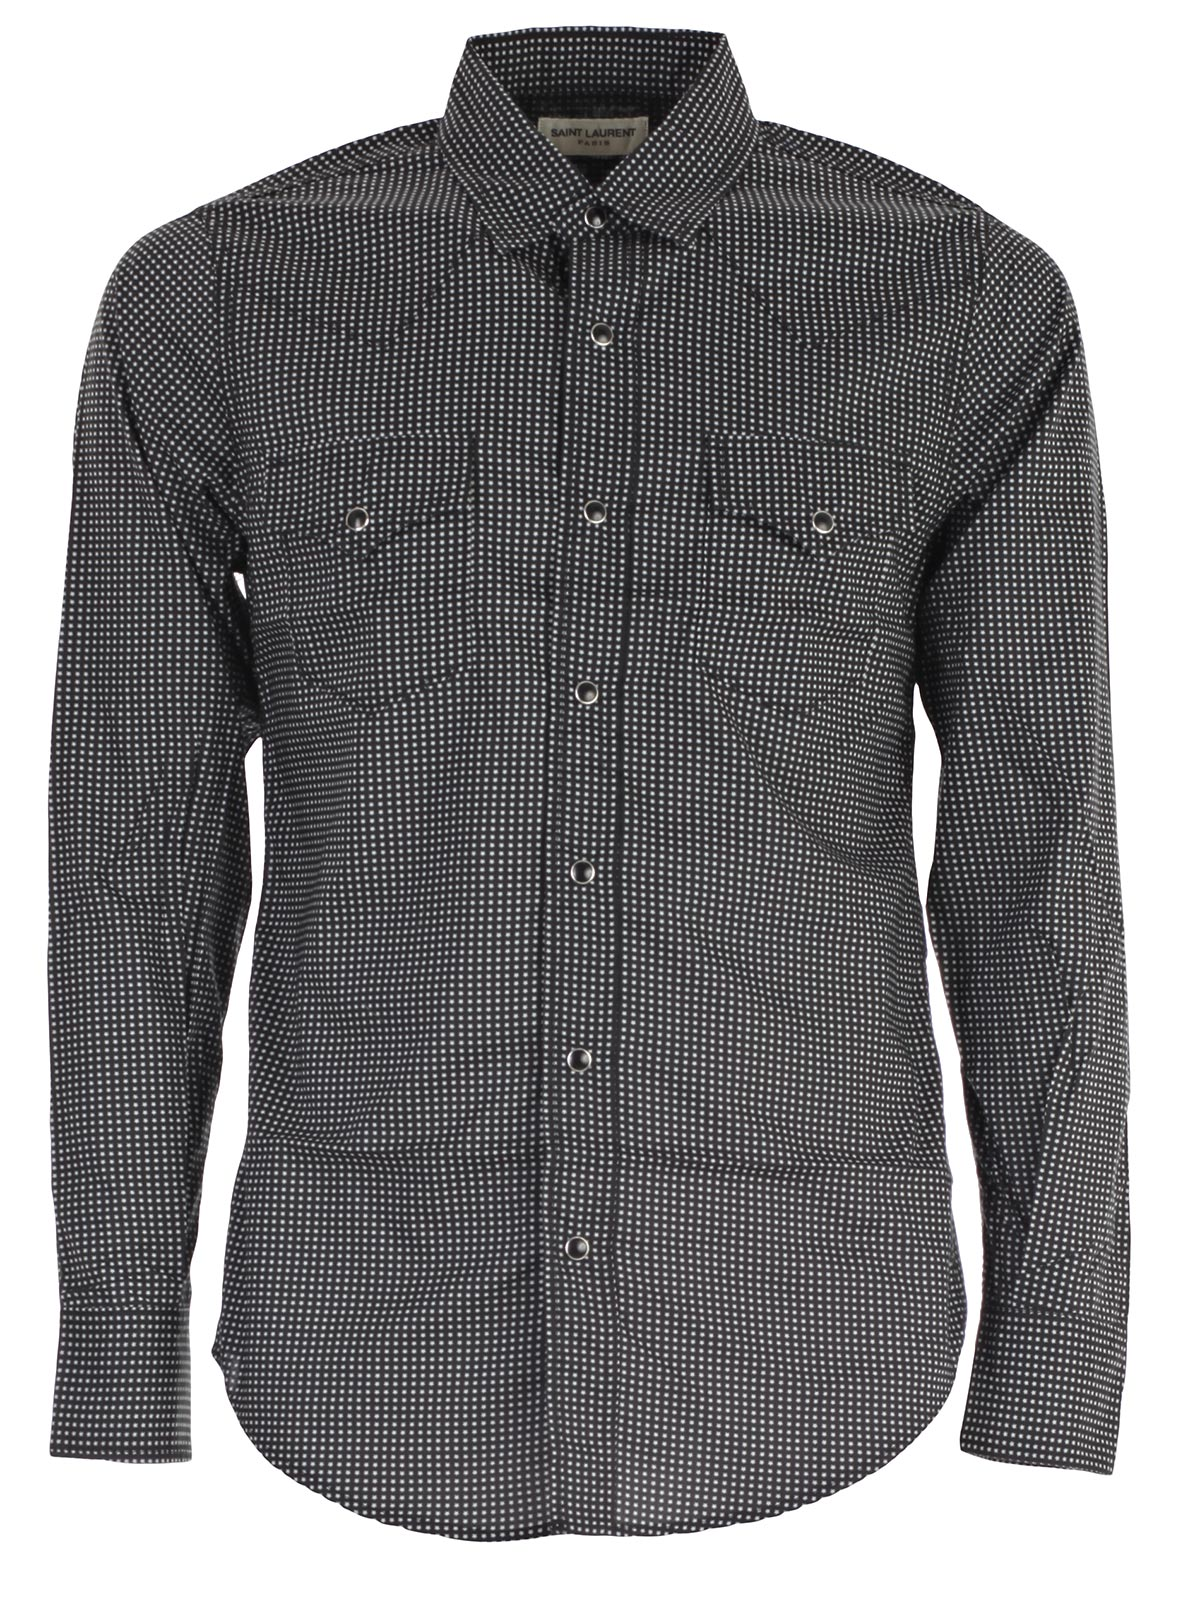 Picture of SAINT LAURENT SHIRT CAMICIA C/STELLINA COLORE SLAVATO